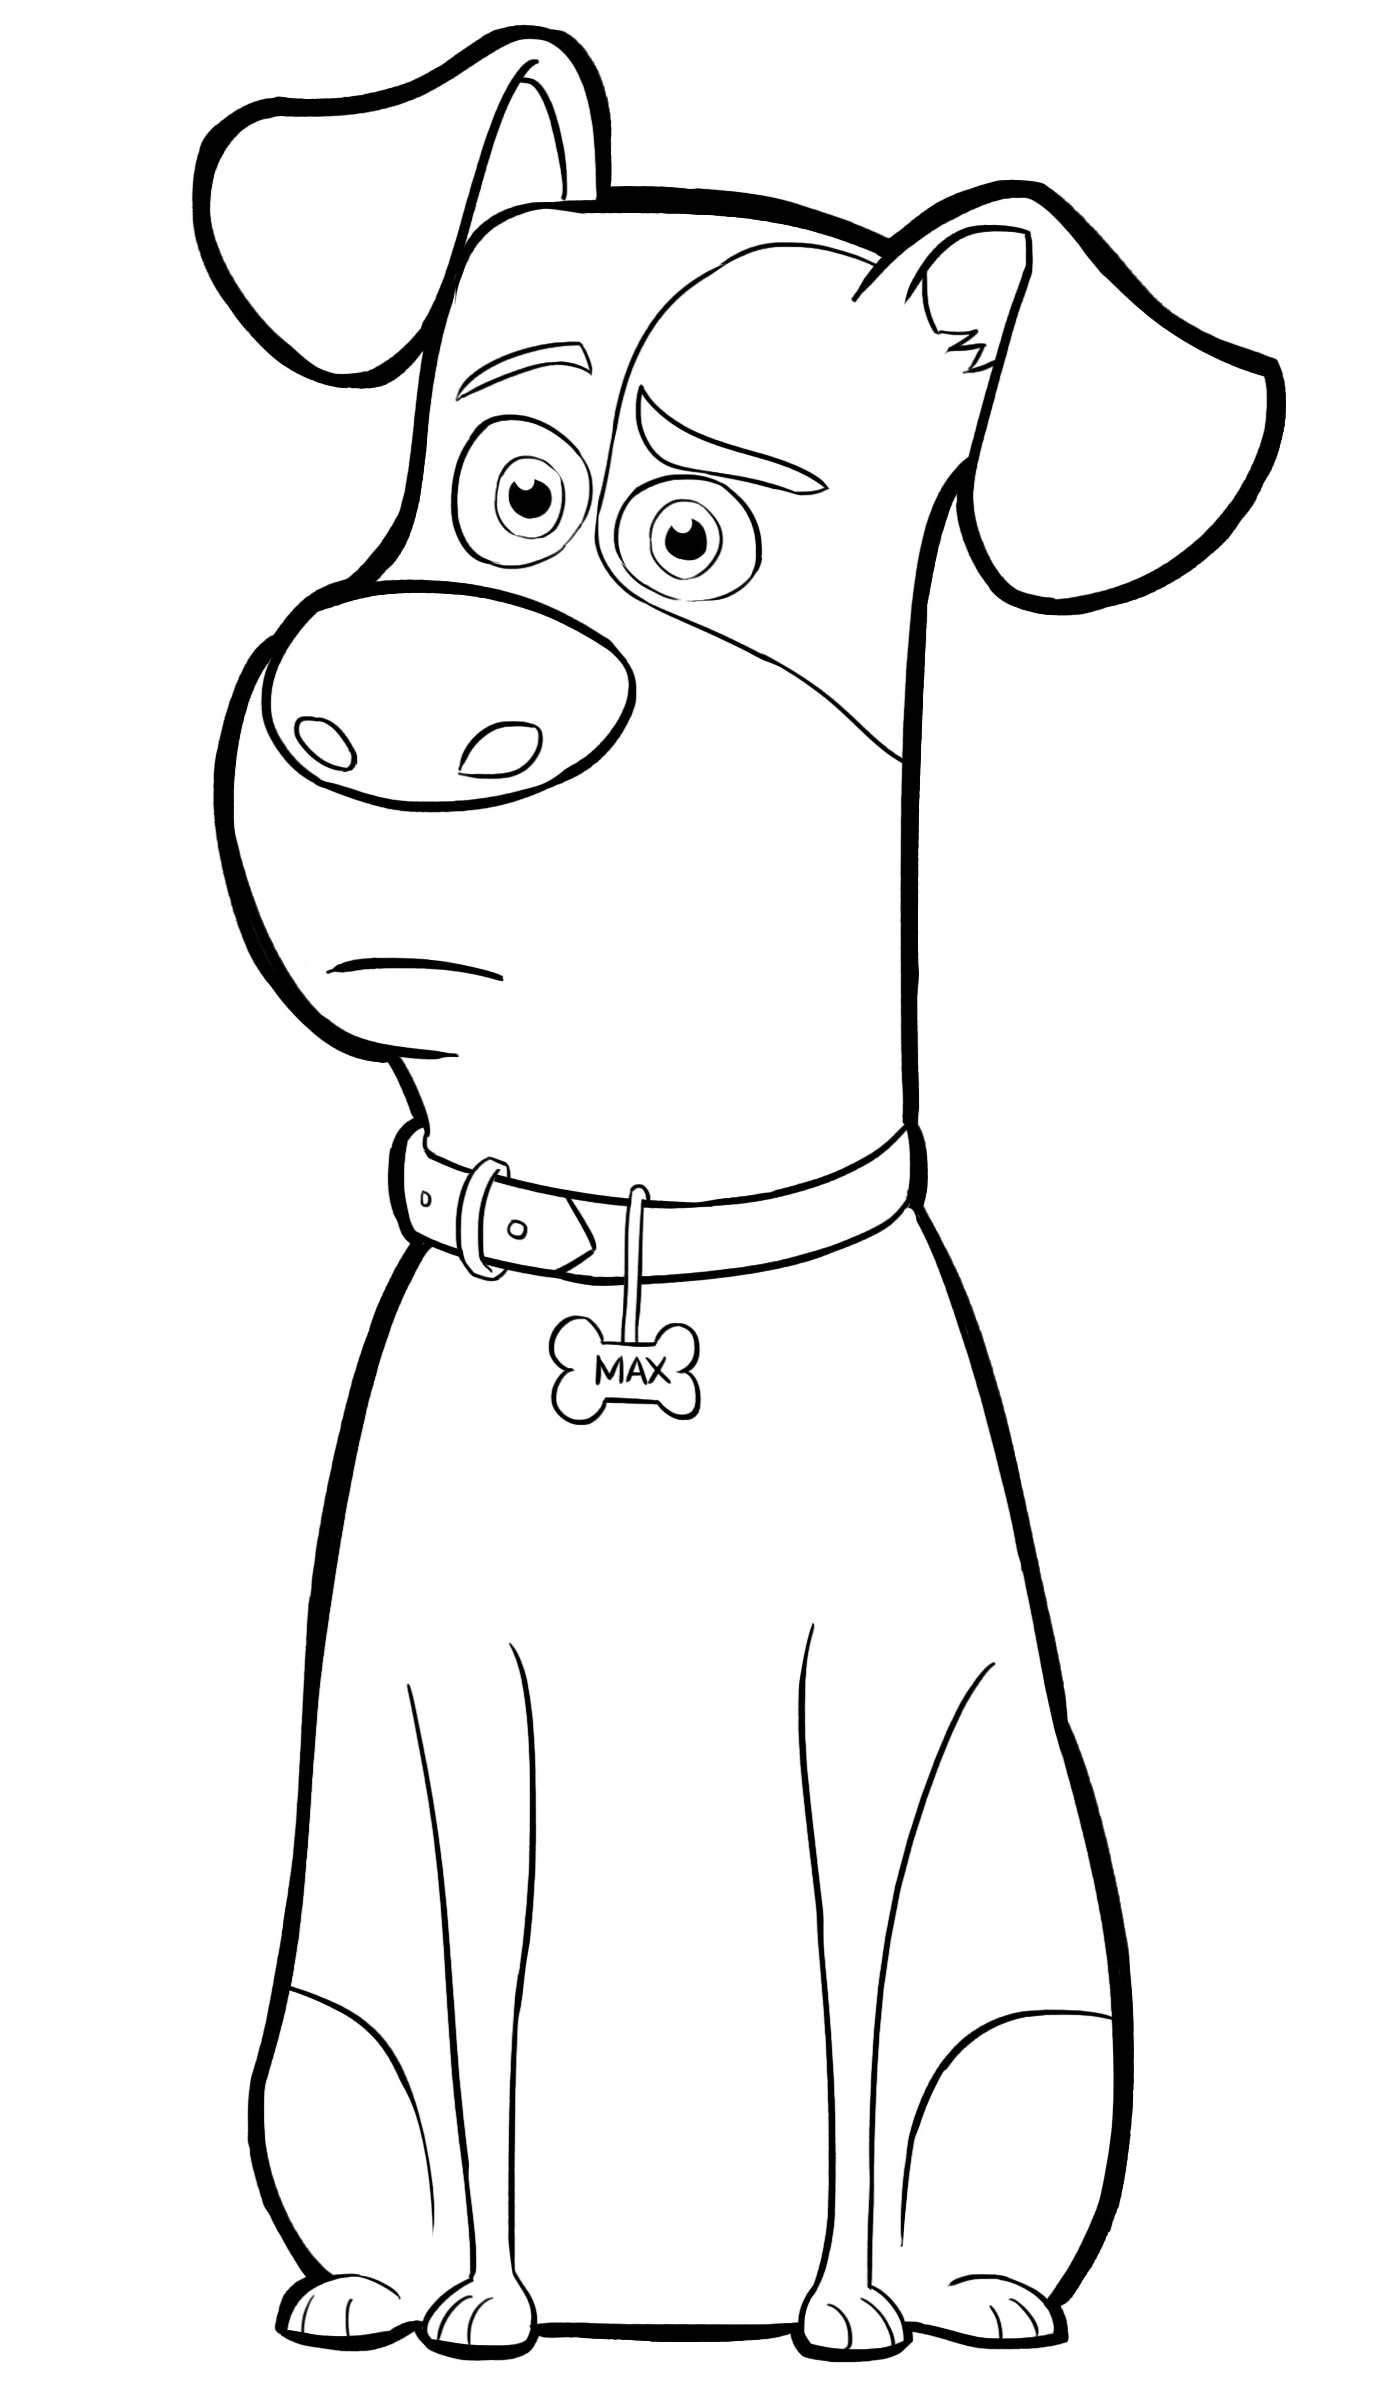 coloring kids picture free printable belle coloring pages for kids picture coloring kids